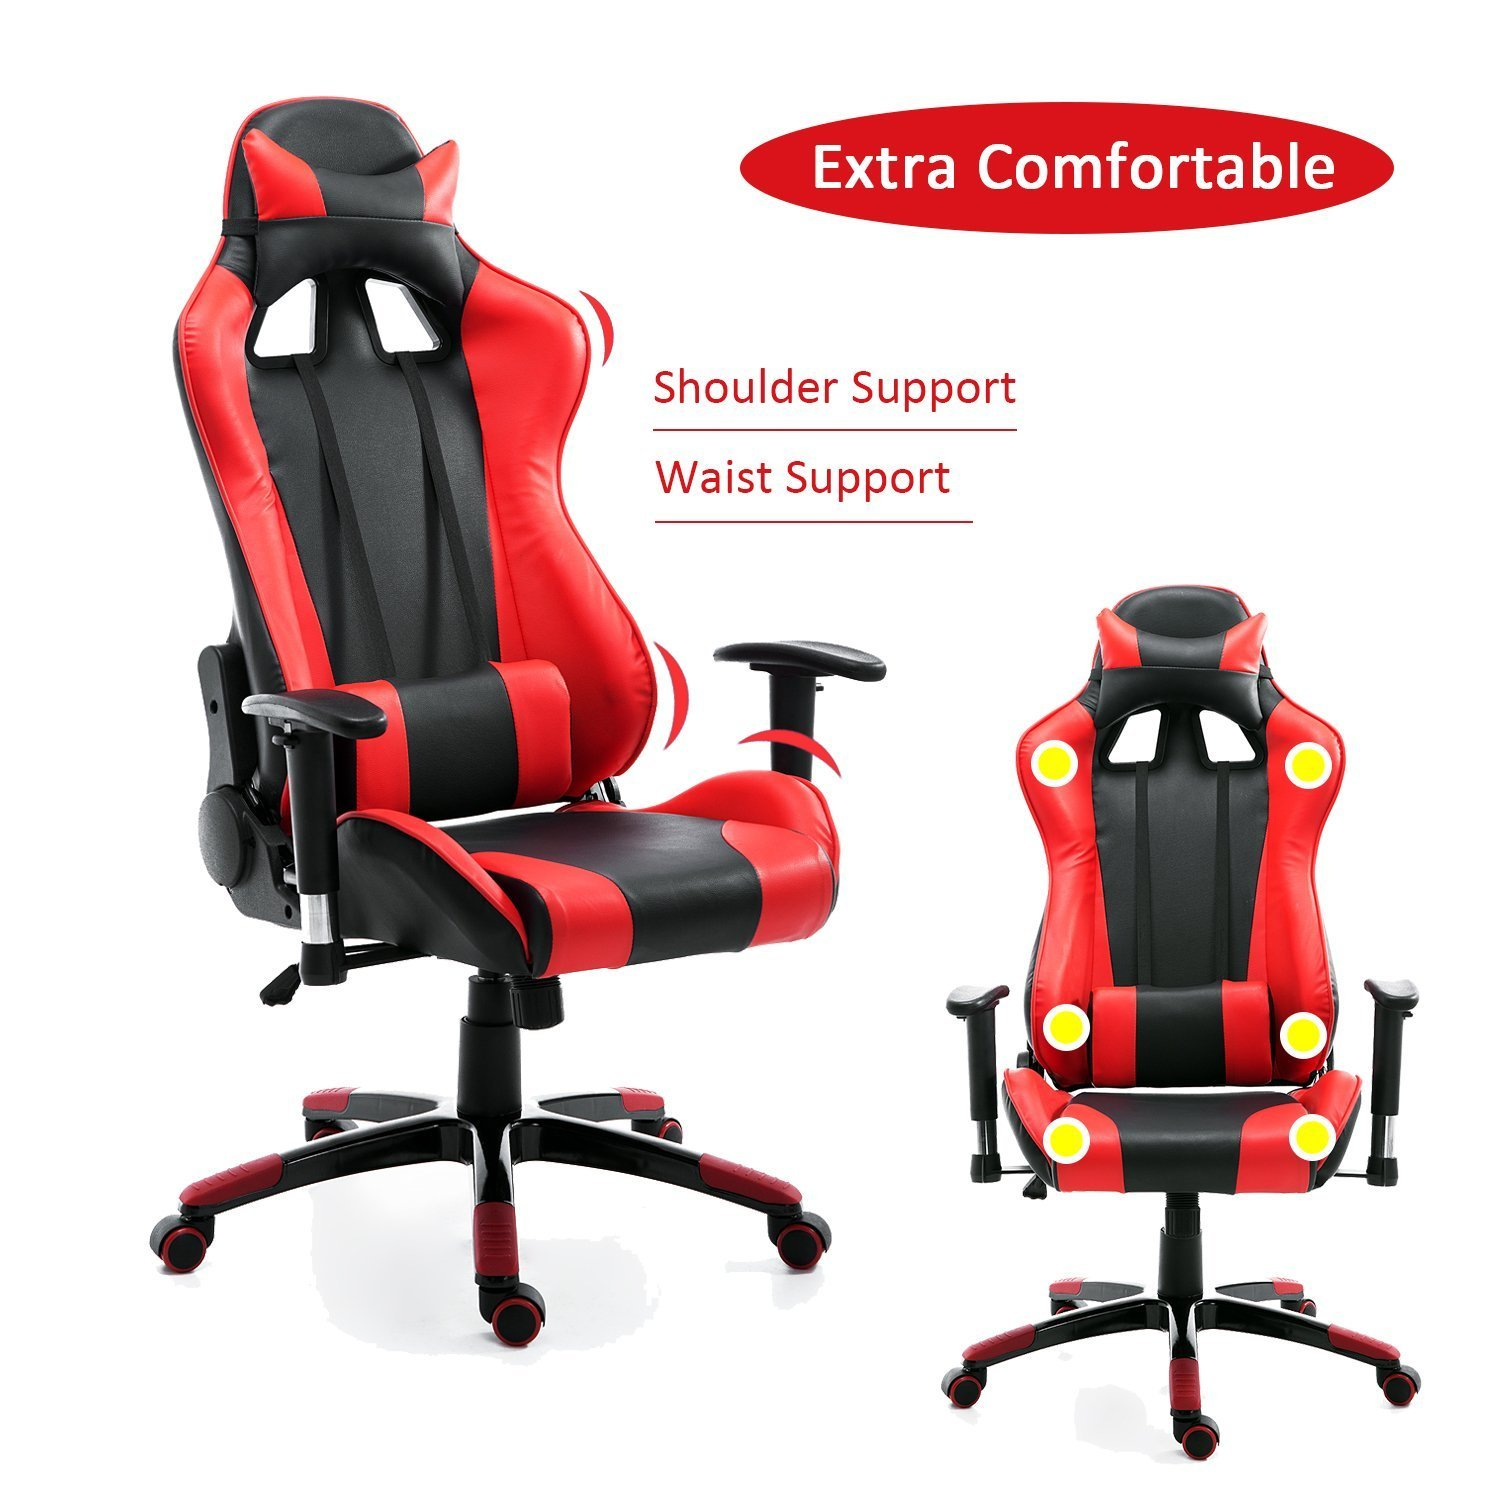 evo gaming xtracing desk gt pul omega office recliner esports seat product red racing chair xt